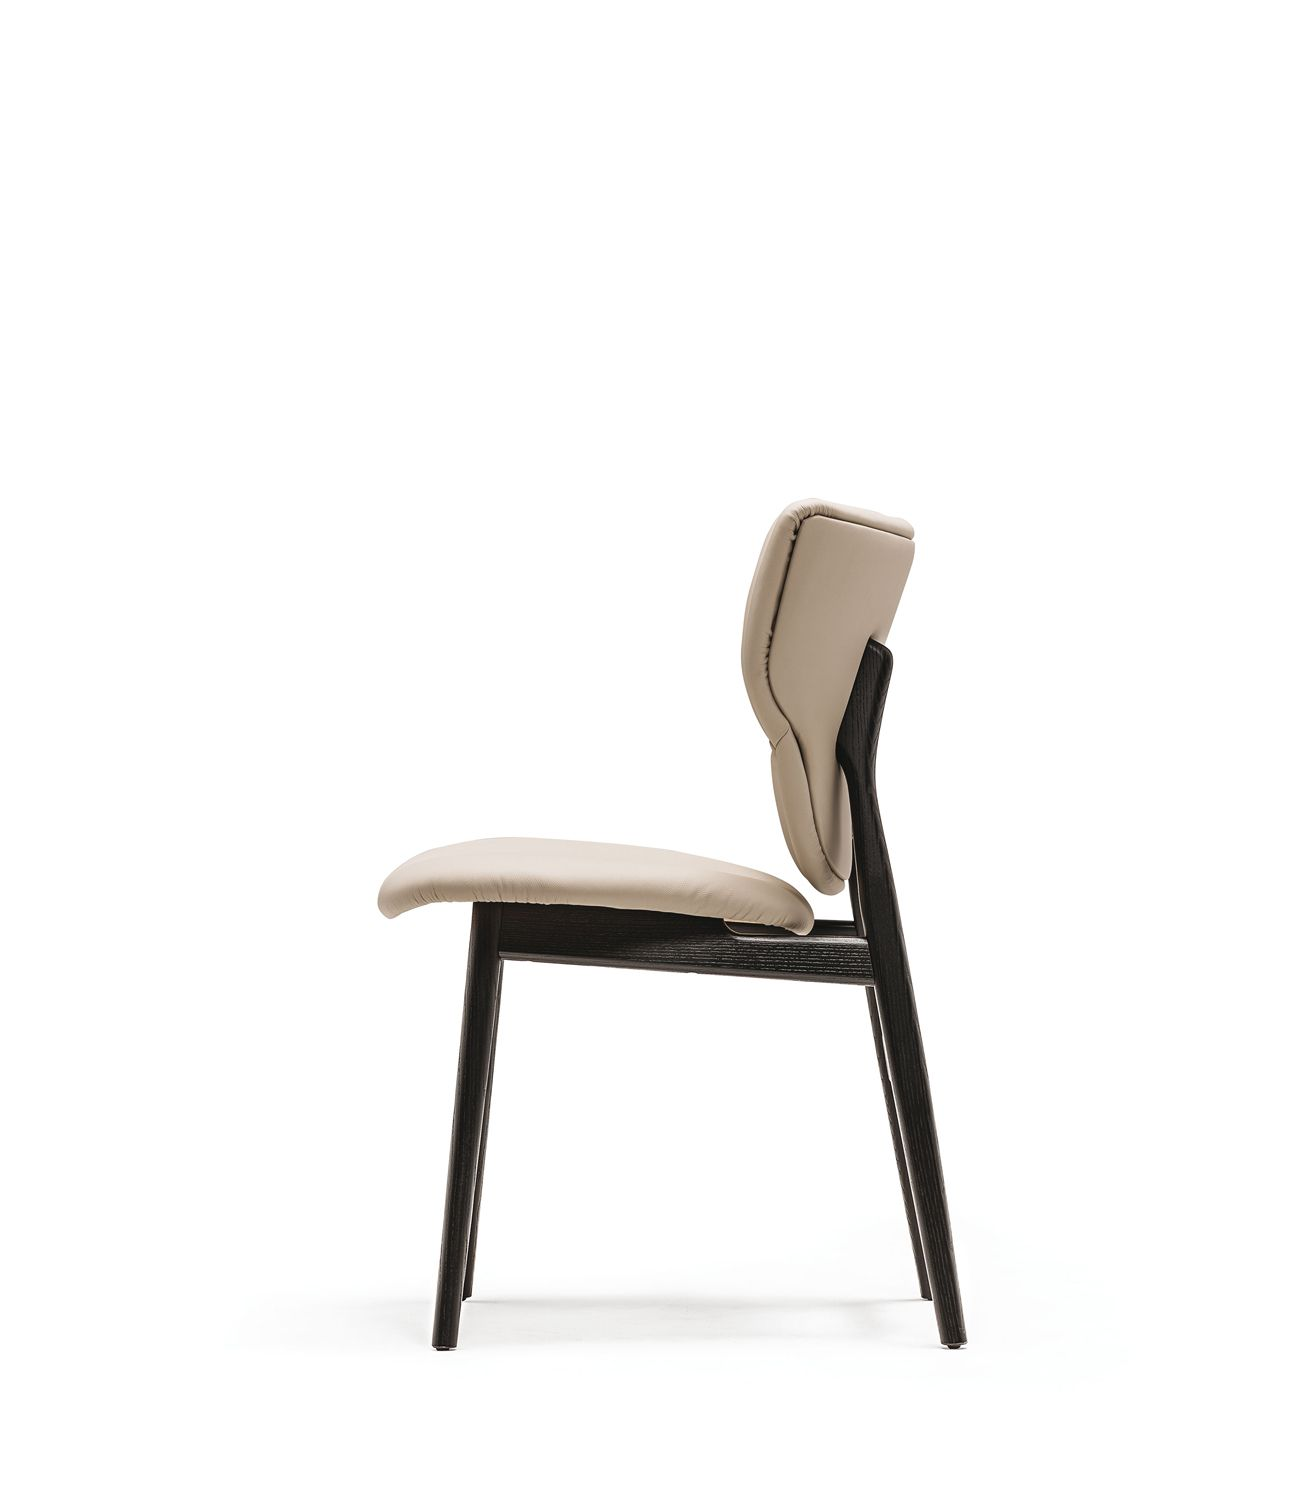 Akka Armchair By Parla Jarrett Furniture Supplying To Individual Hospitality Projects In The Uk And Abroad In 2020 Armchair Furniture Armchair Hospital Furniture